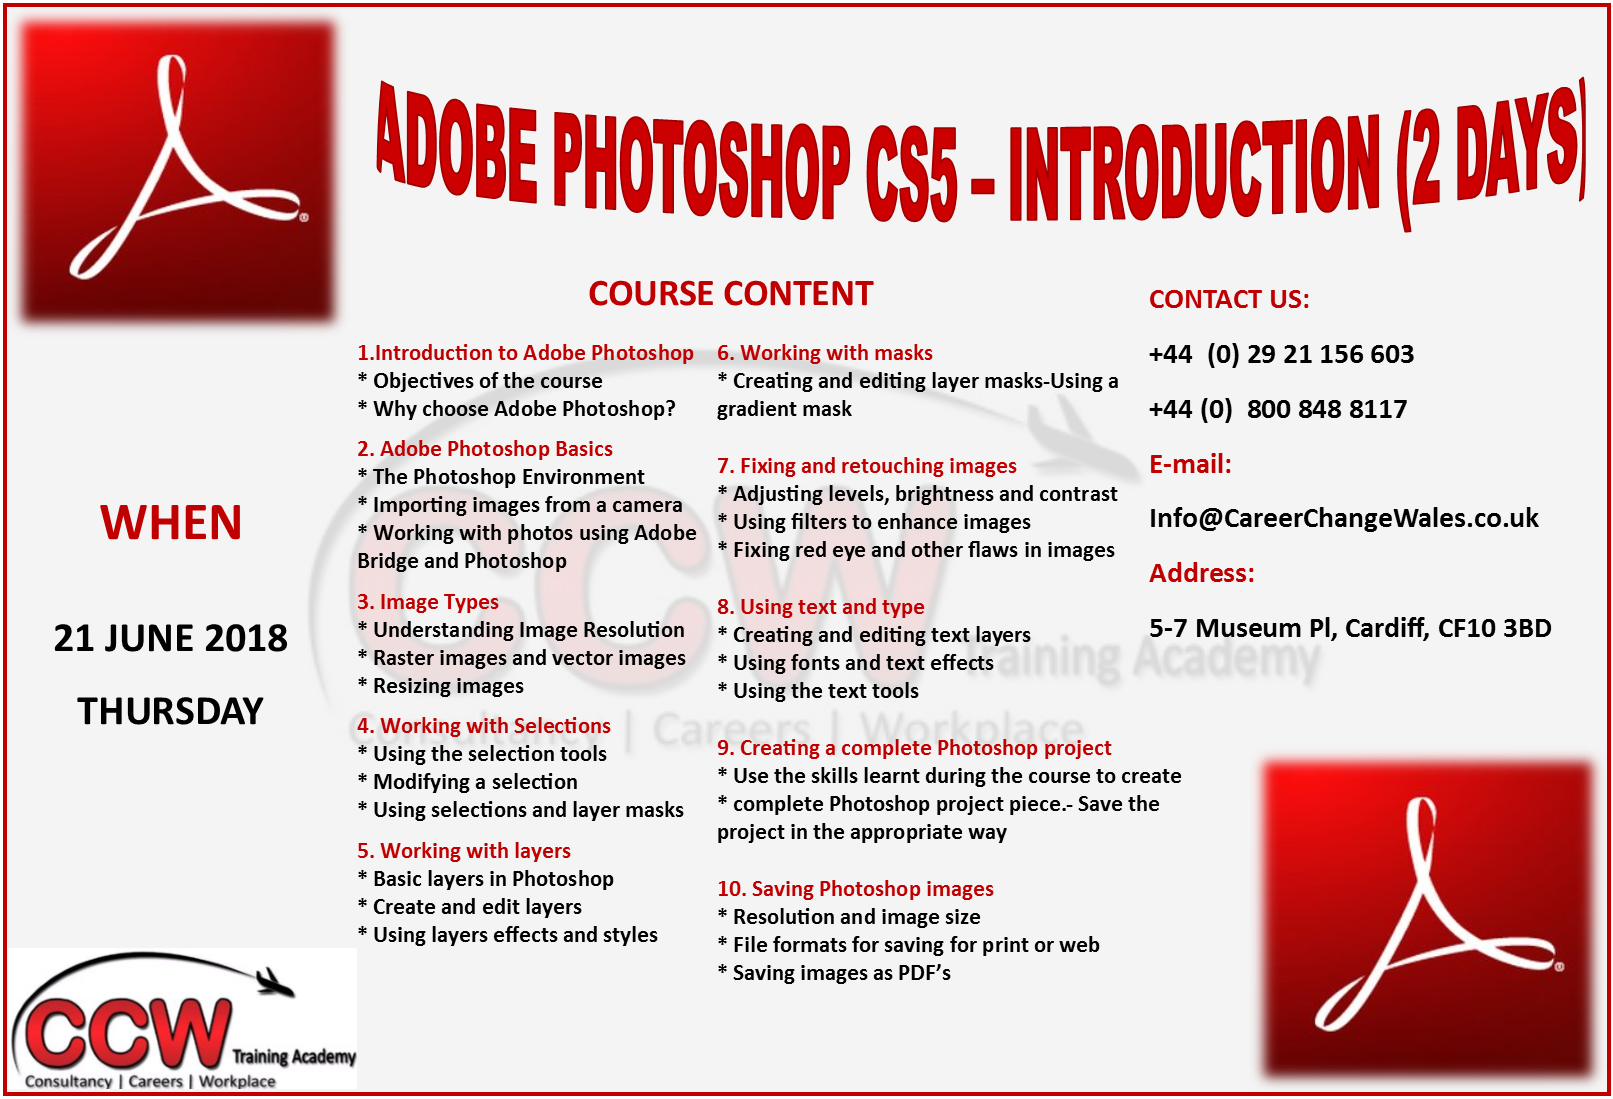 Adobe Photoshop Cs5 Guide Pdf